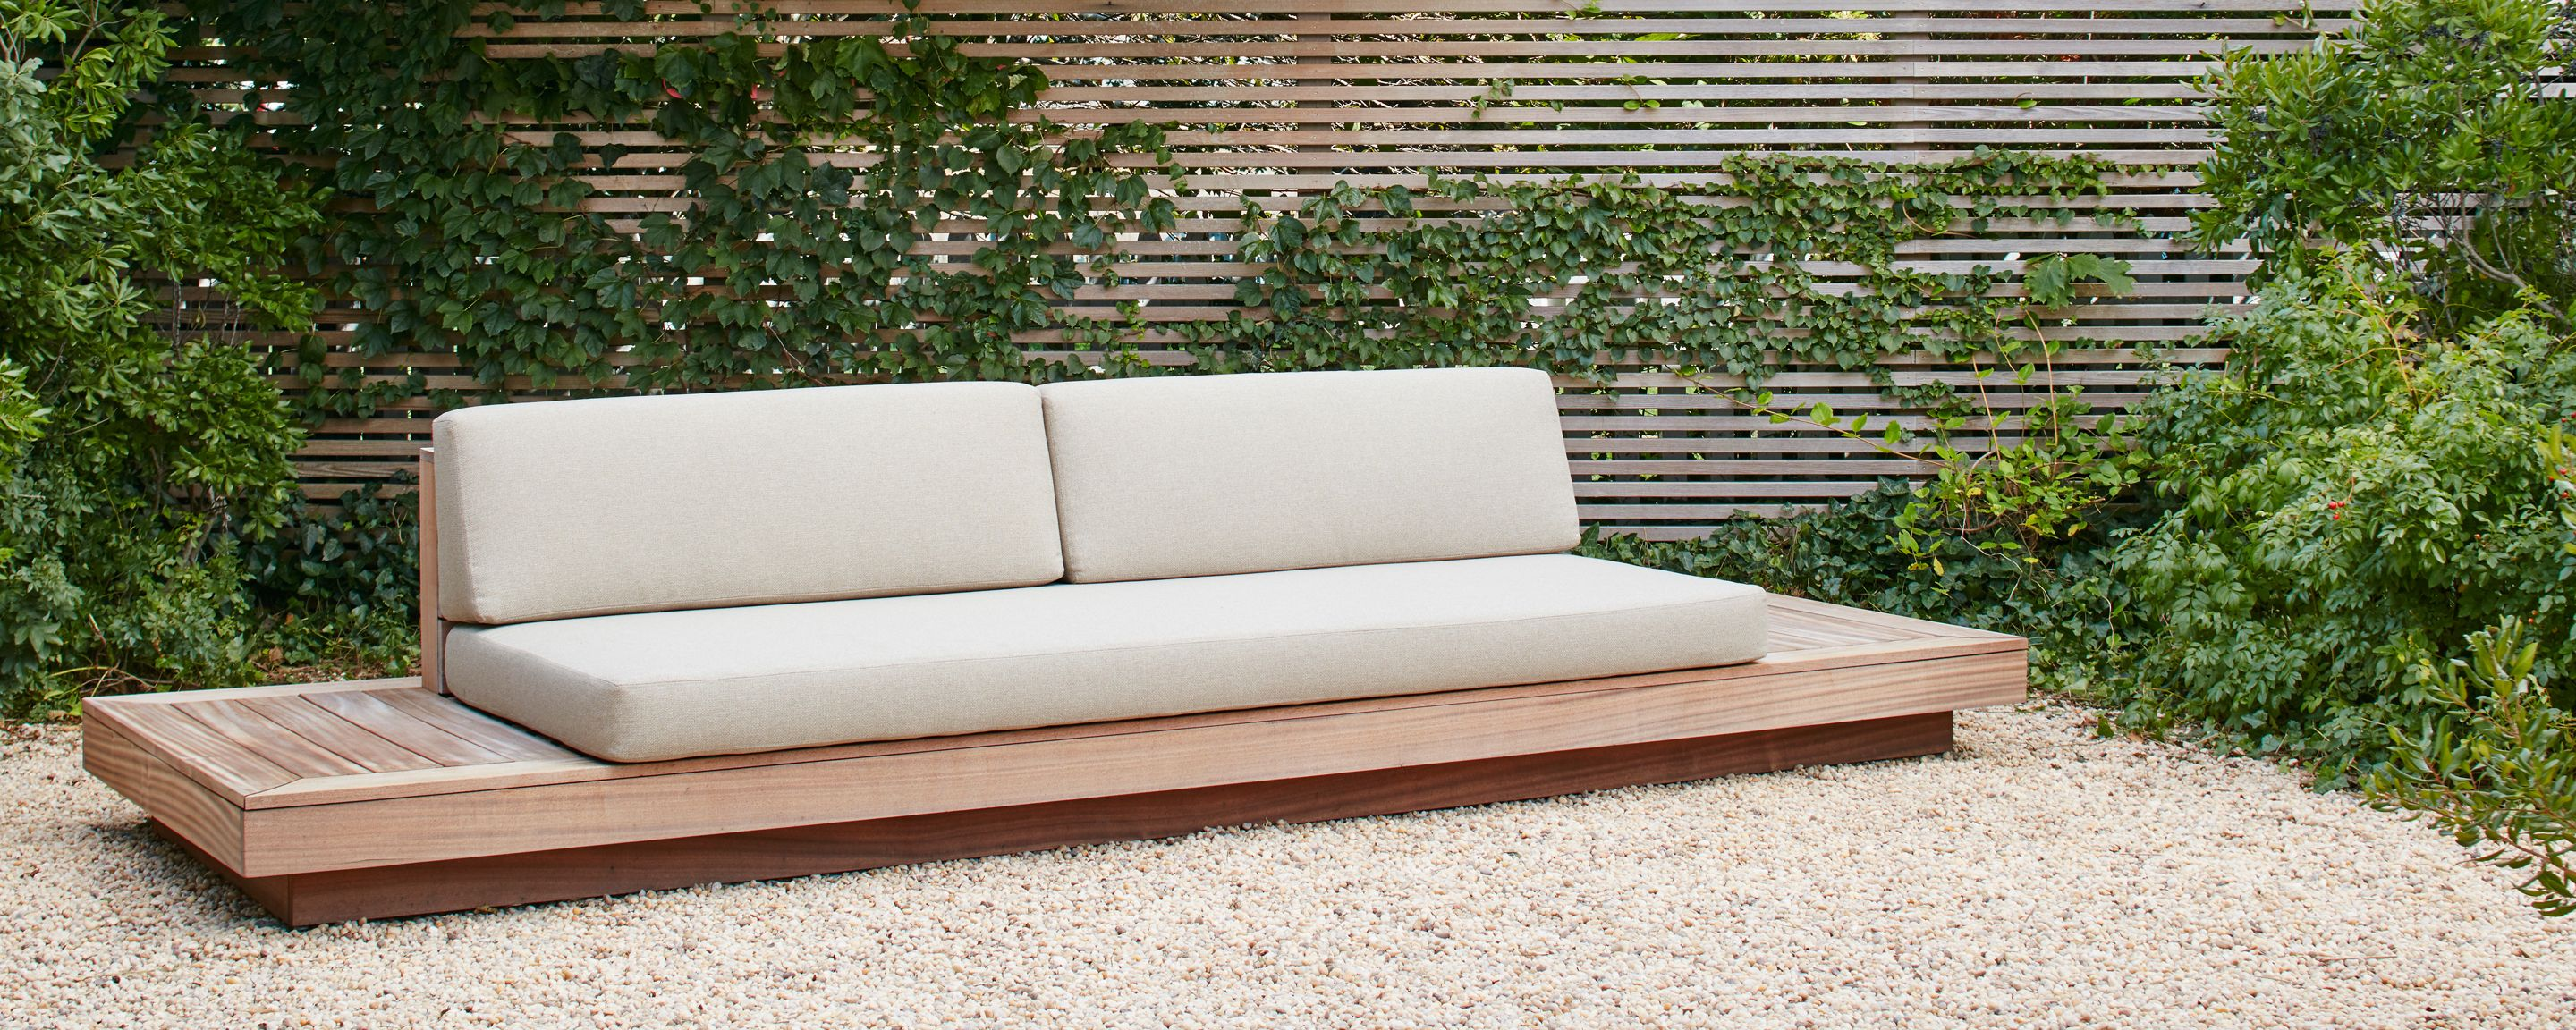 Outdoor Platform Sofa Collection Cushion Covering Is Included